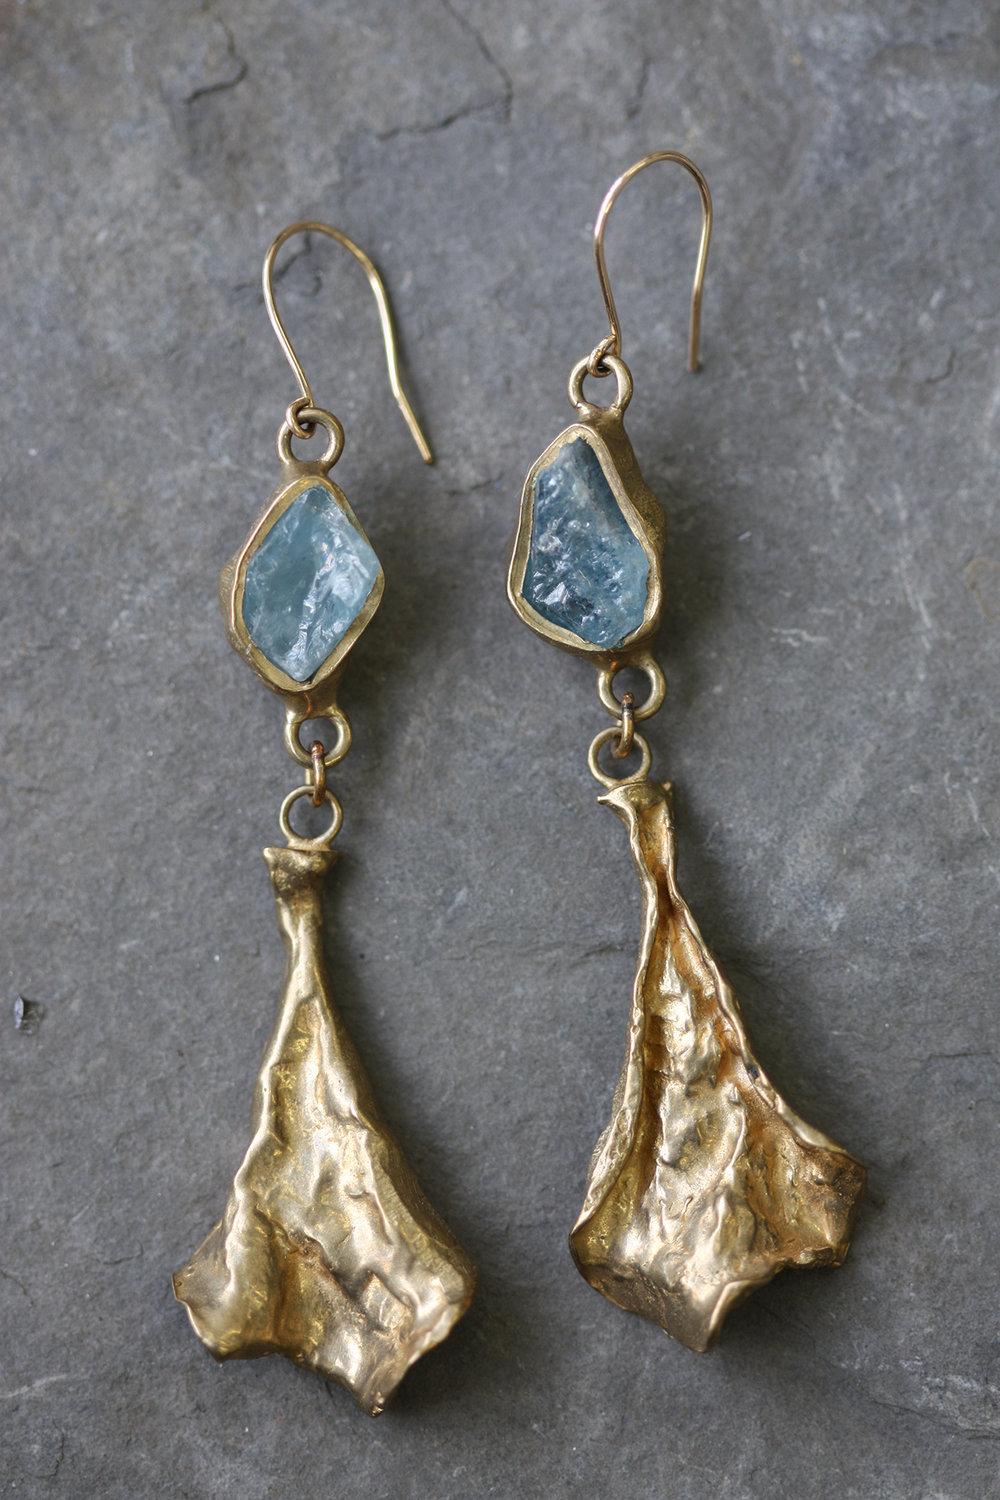 echeveria_earrings.jpg